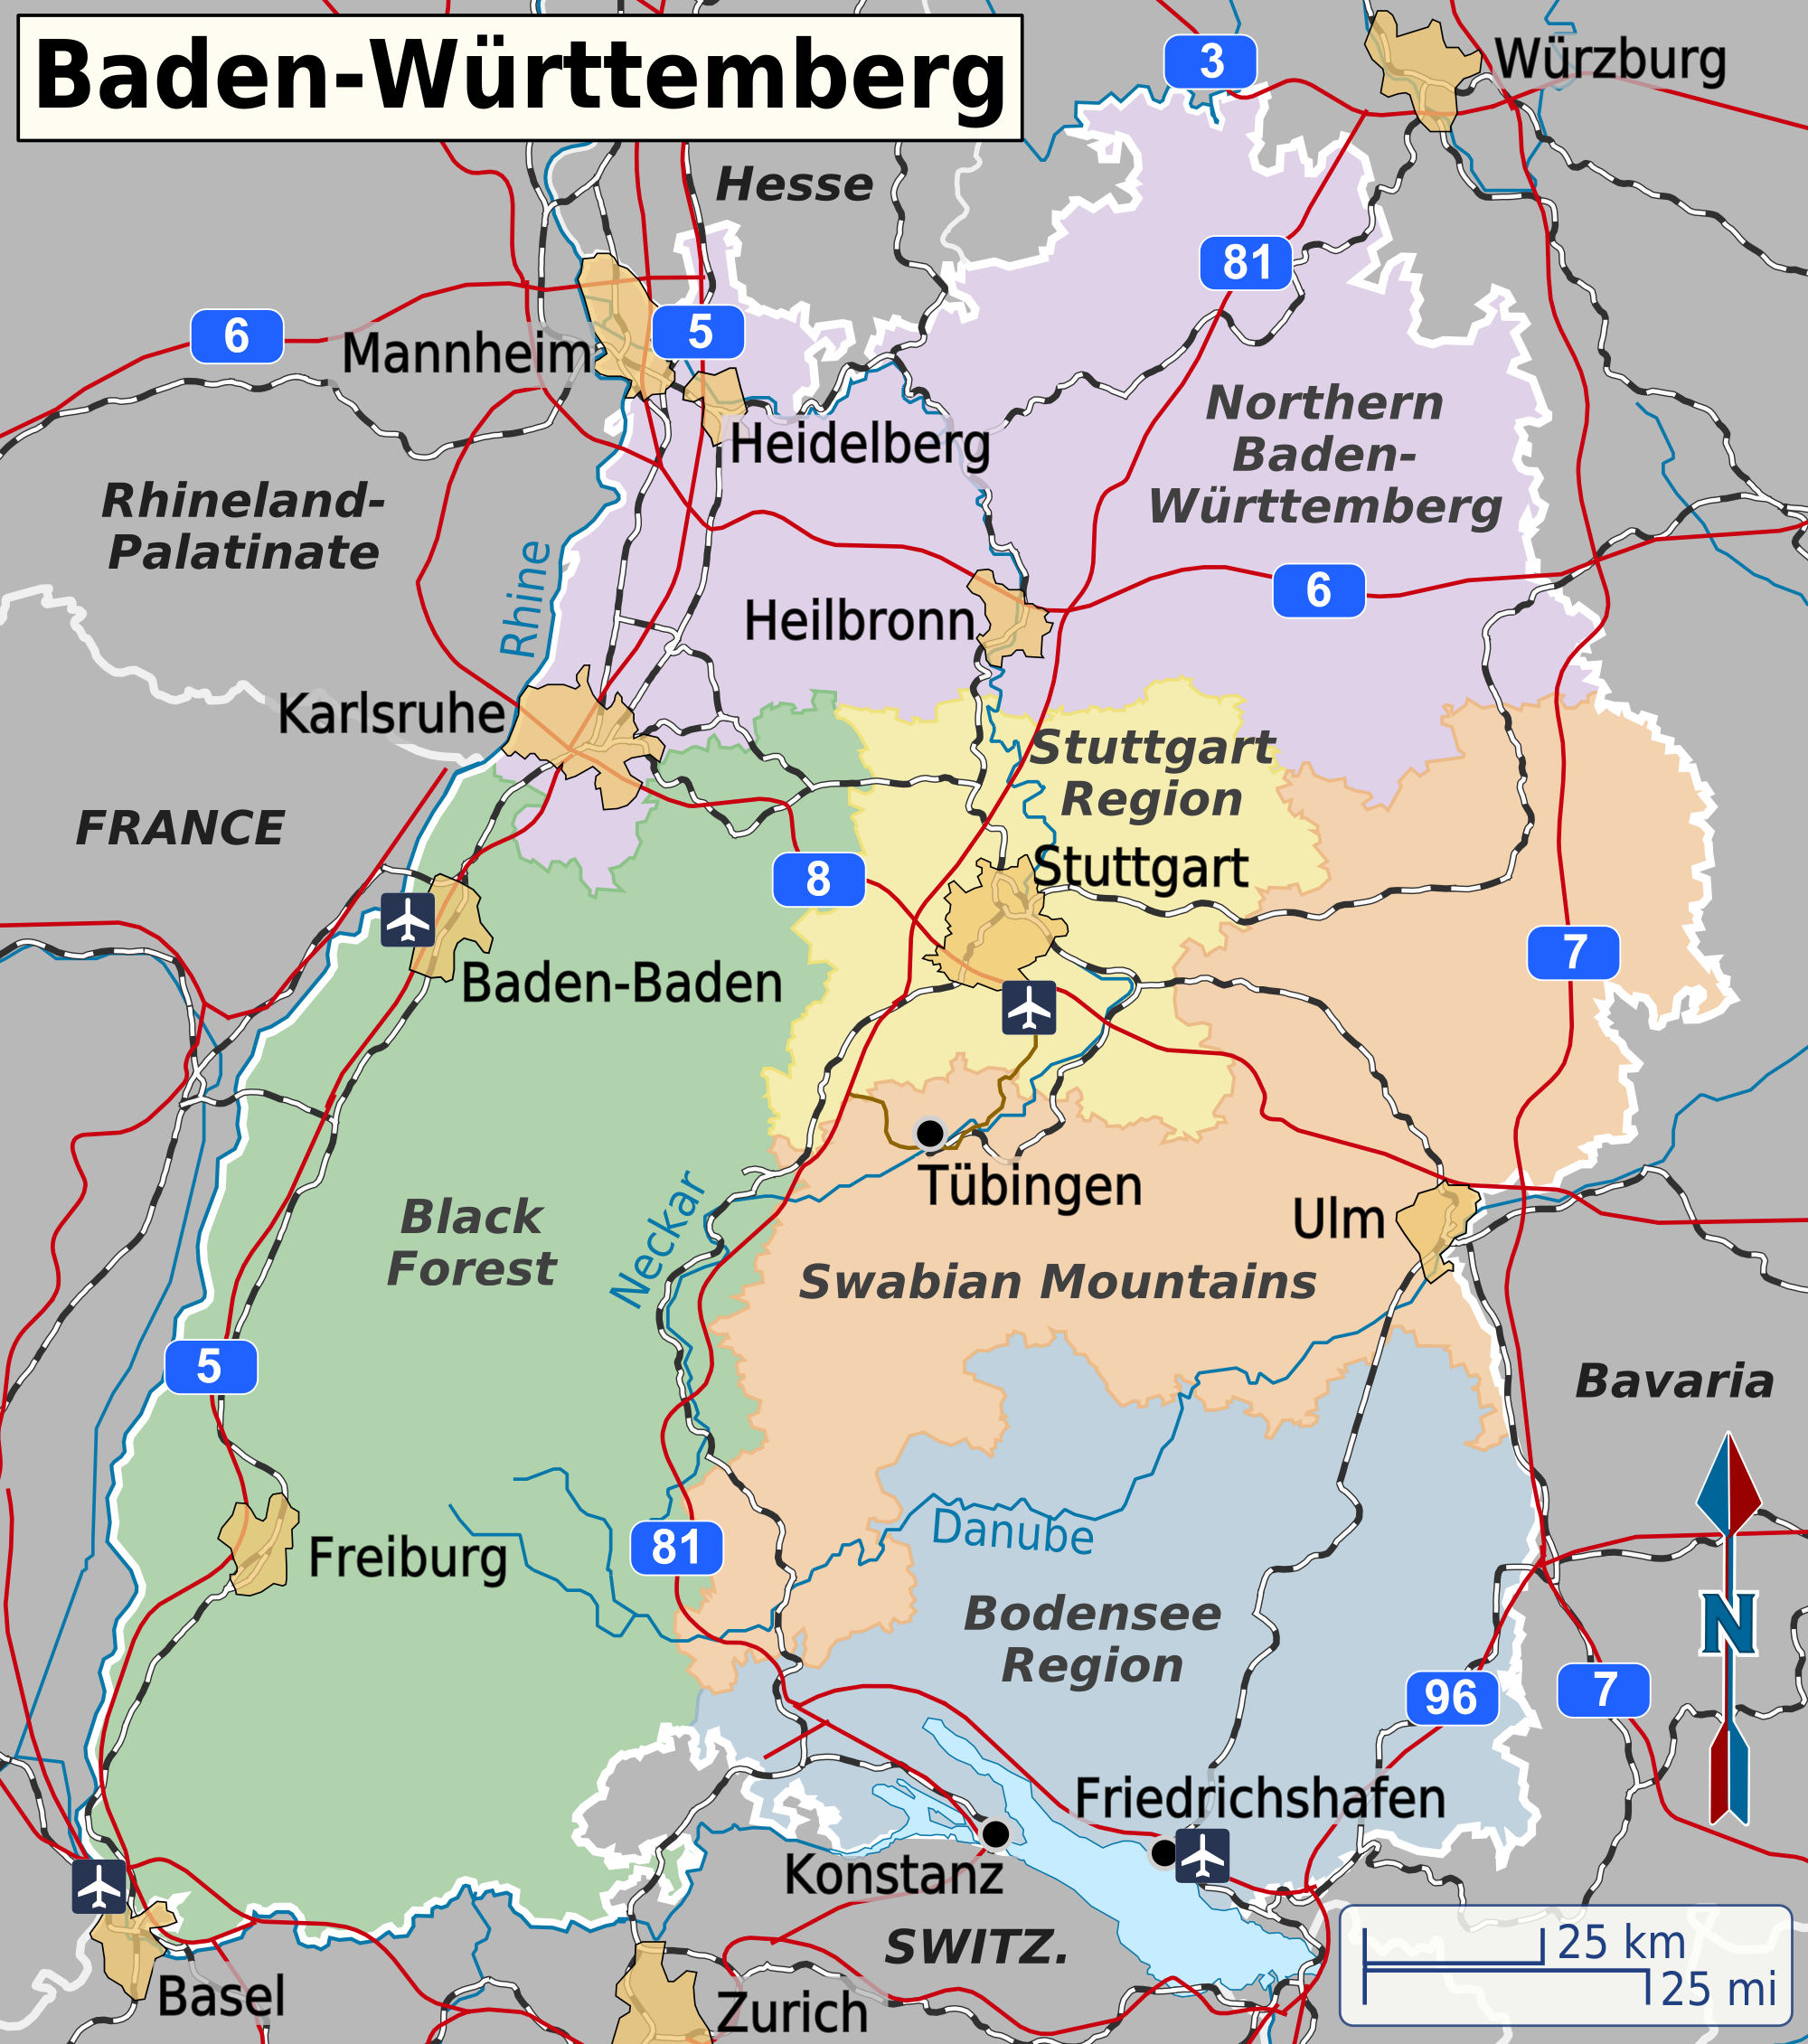 Map Of Germany Karlsruhe Baden.Baden Wurttemberg Travel Guide At Wikivoyage